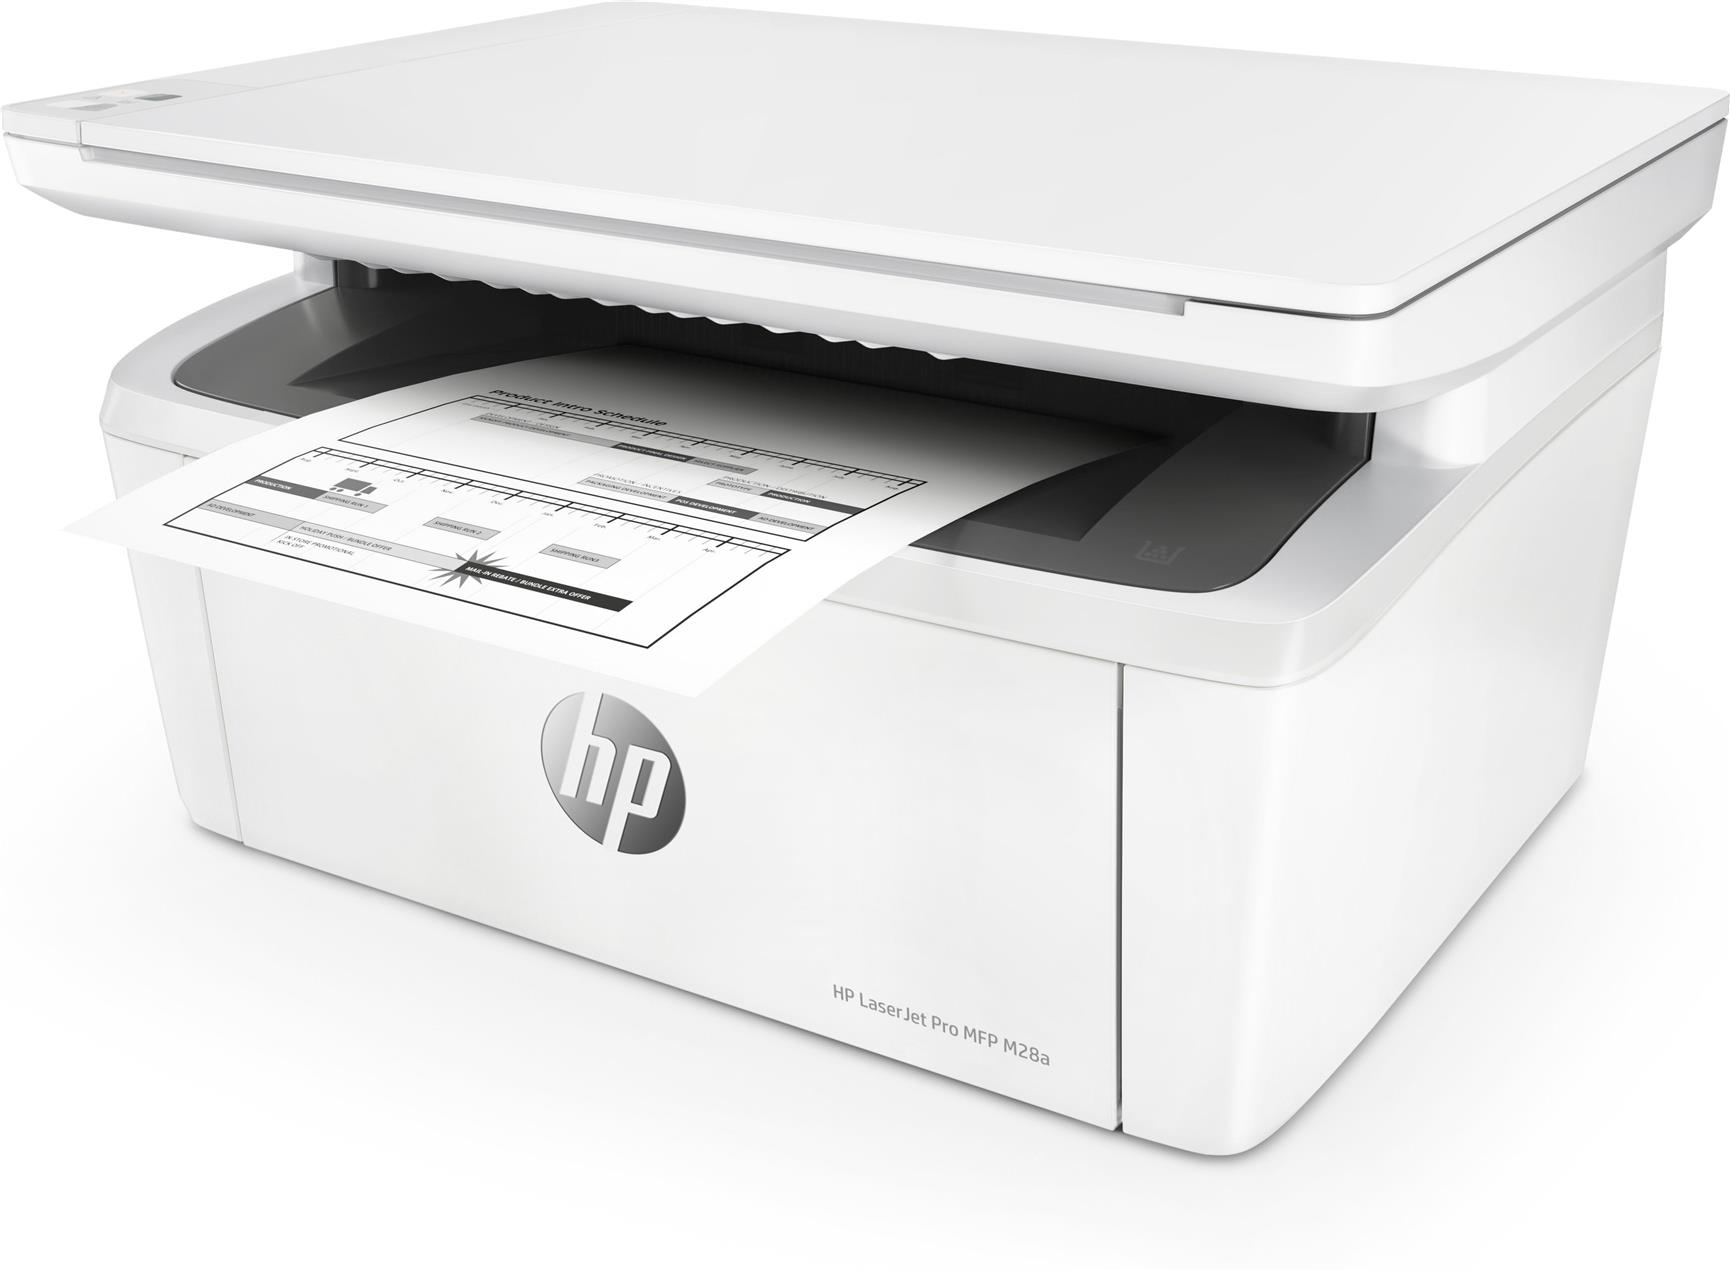 Image result for HP PRO MFP M28A